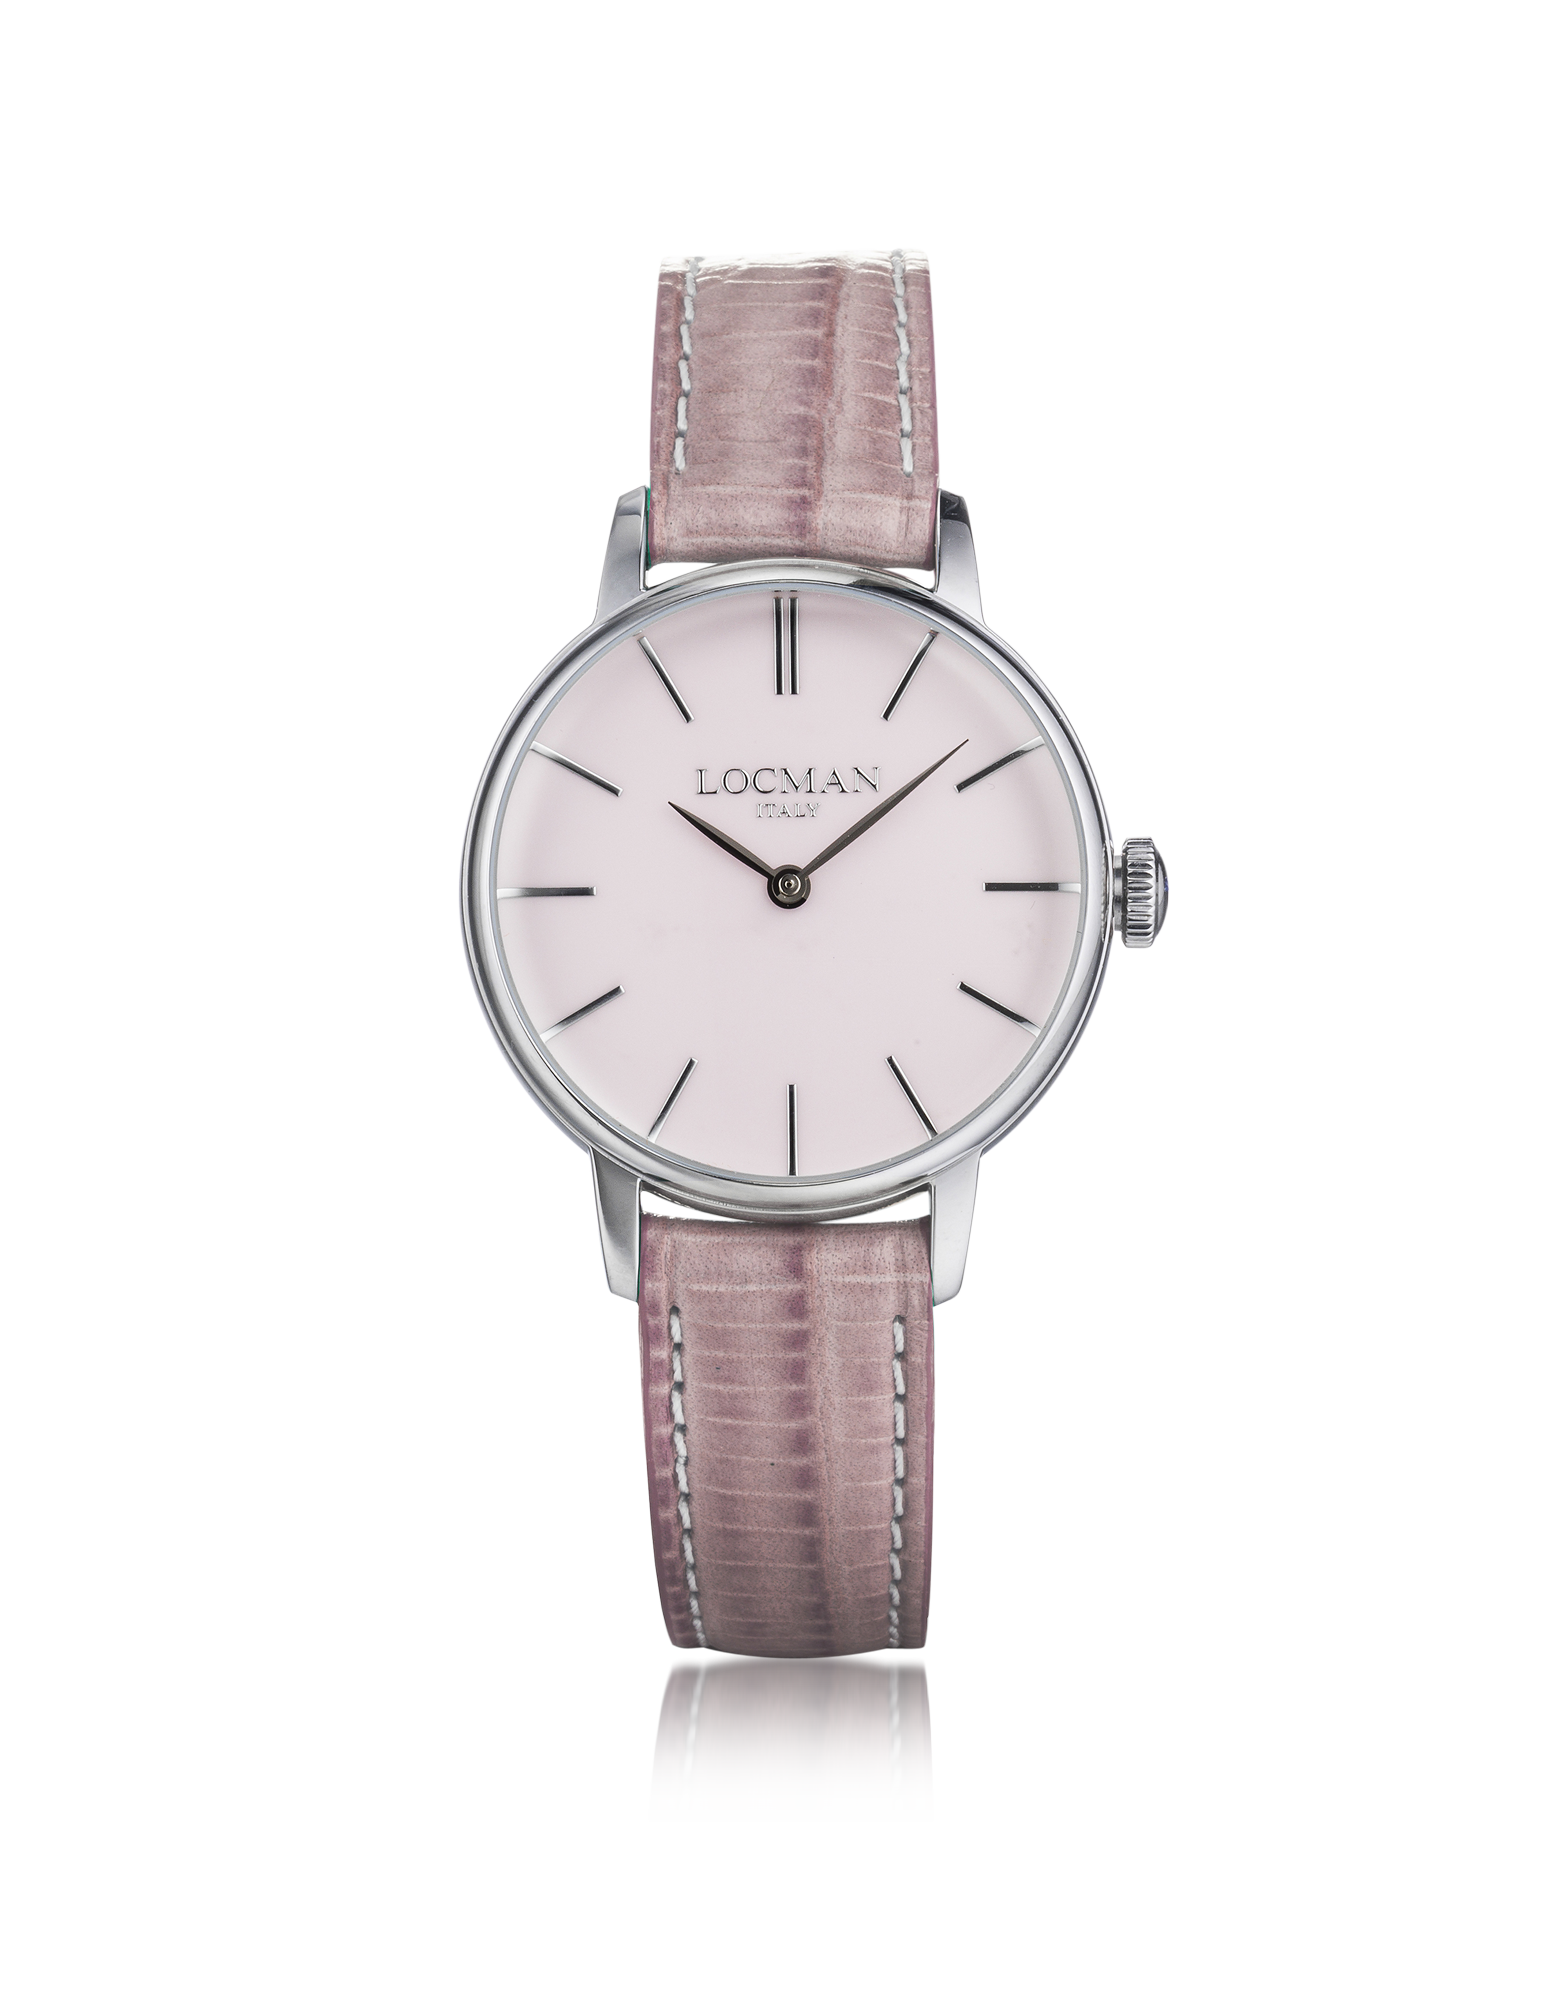 Image of 1960 Silver Stainless Steel Women's Watch w/Pink Croco Embossed Leather Strap